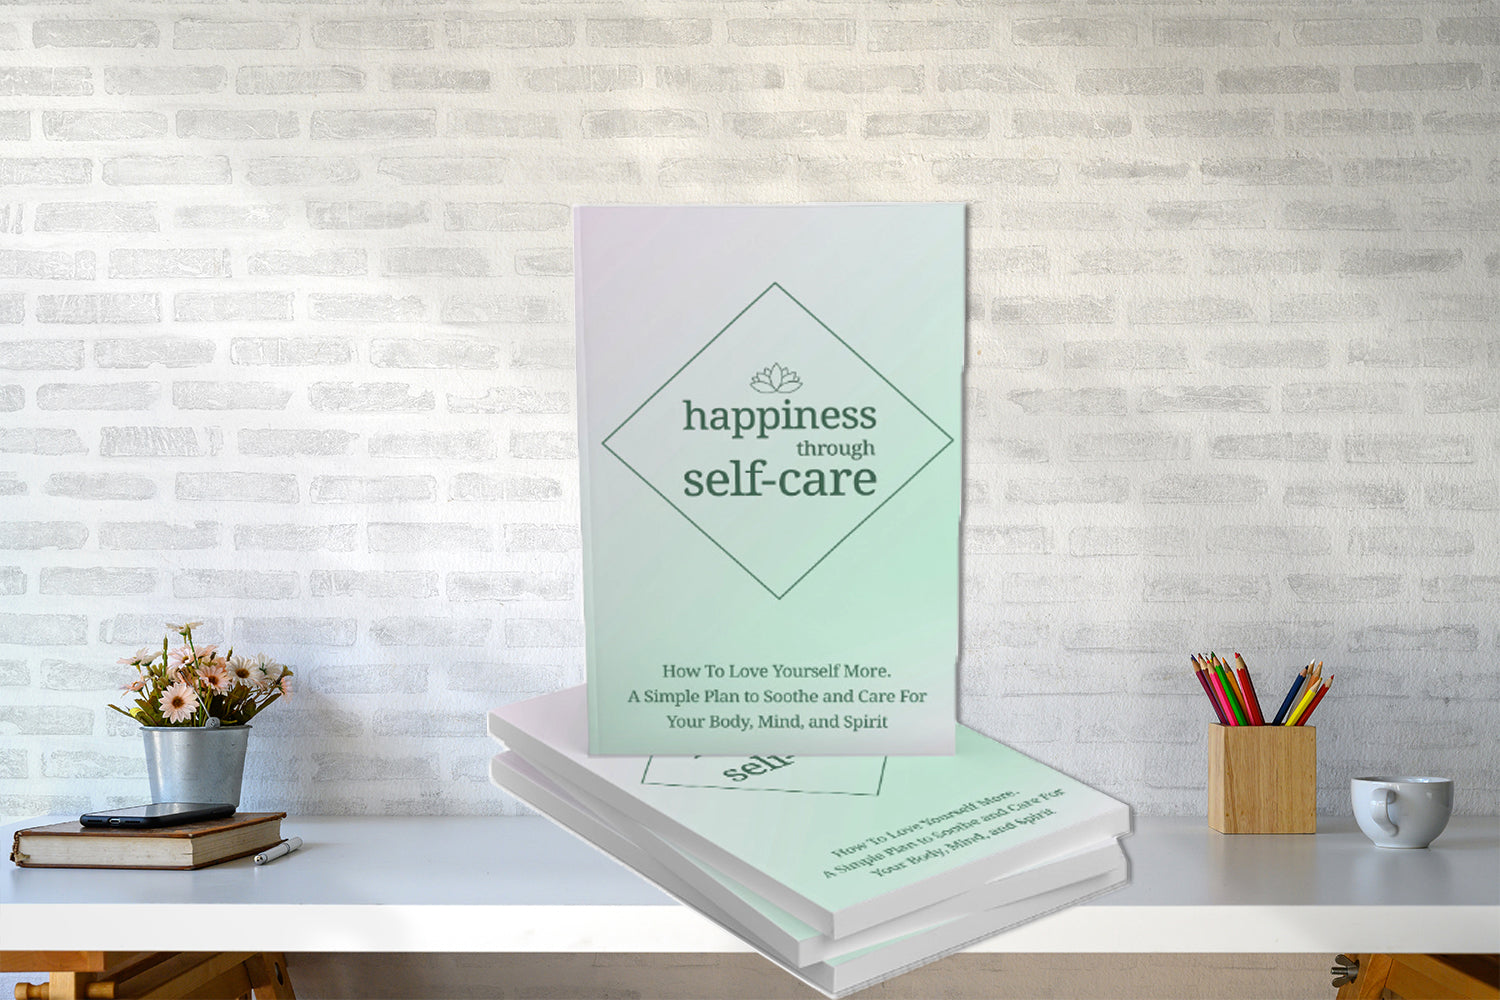 Happiness Through Self-care.  How To Love Yourself More. A Simple Plan To Soothe And Care For Your Body, Mind, And Spirit